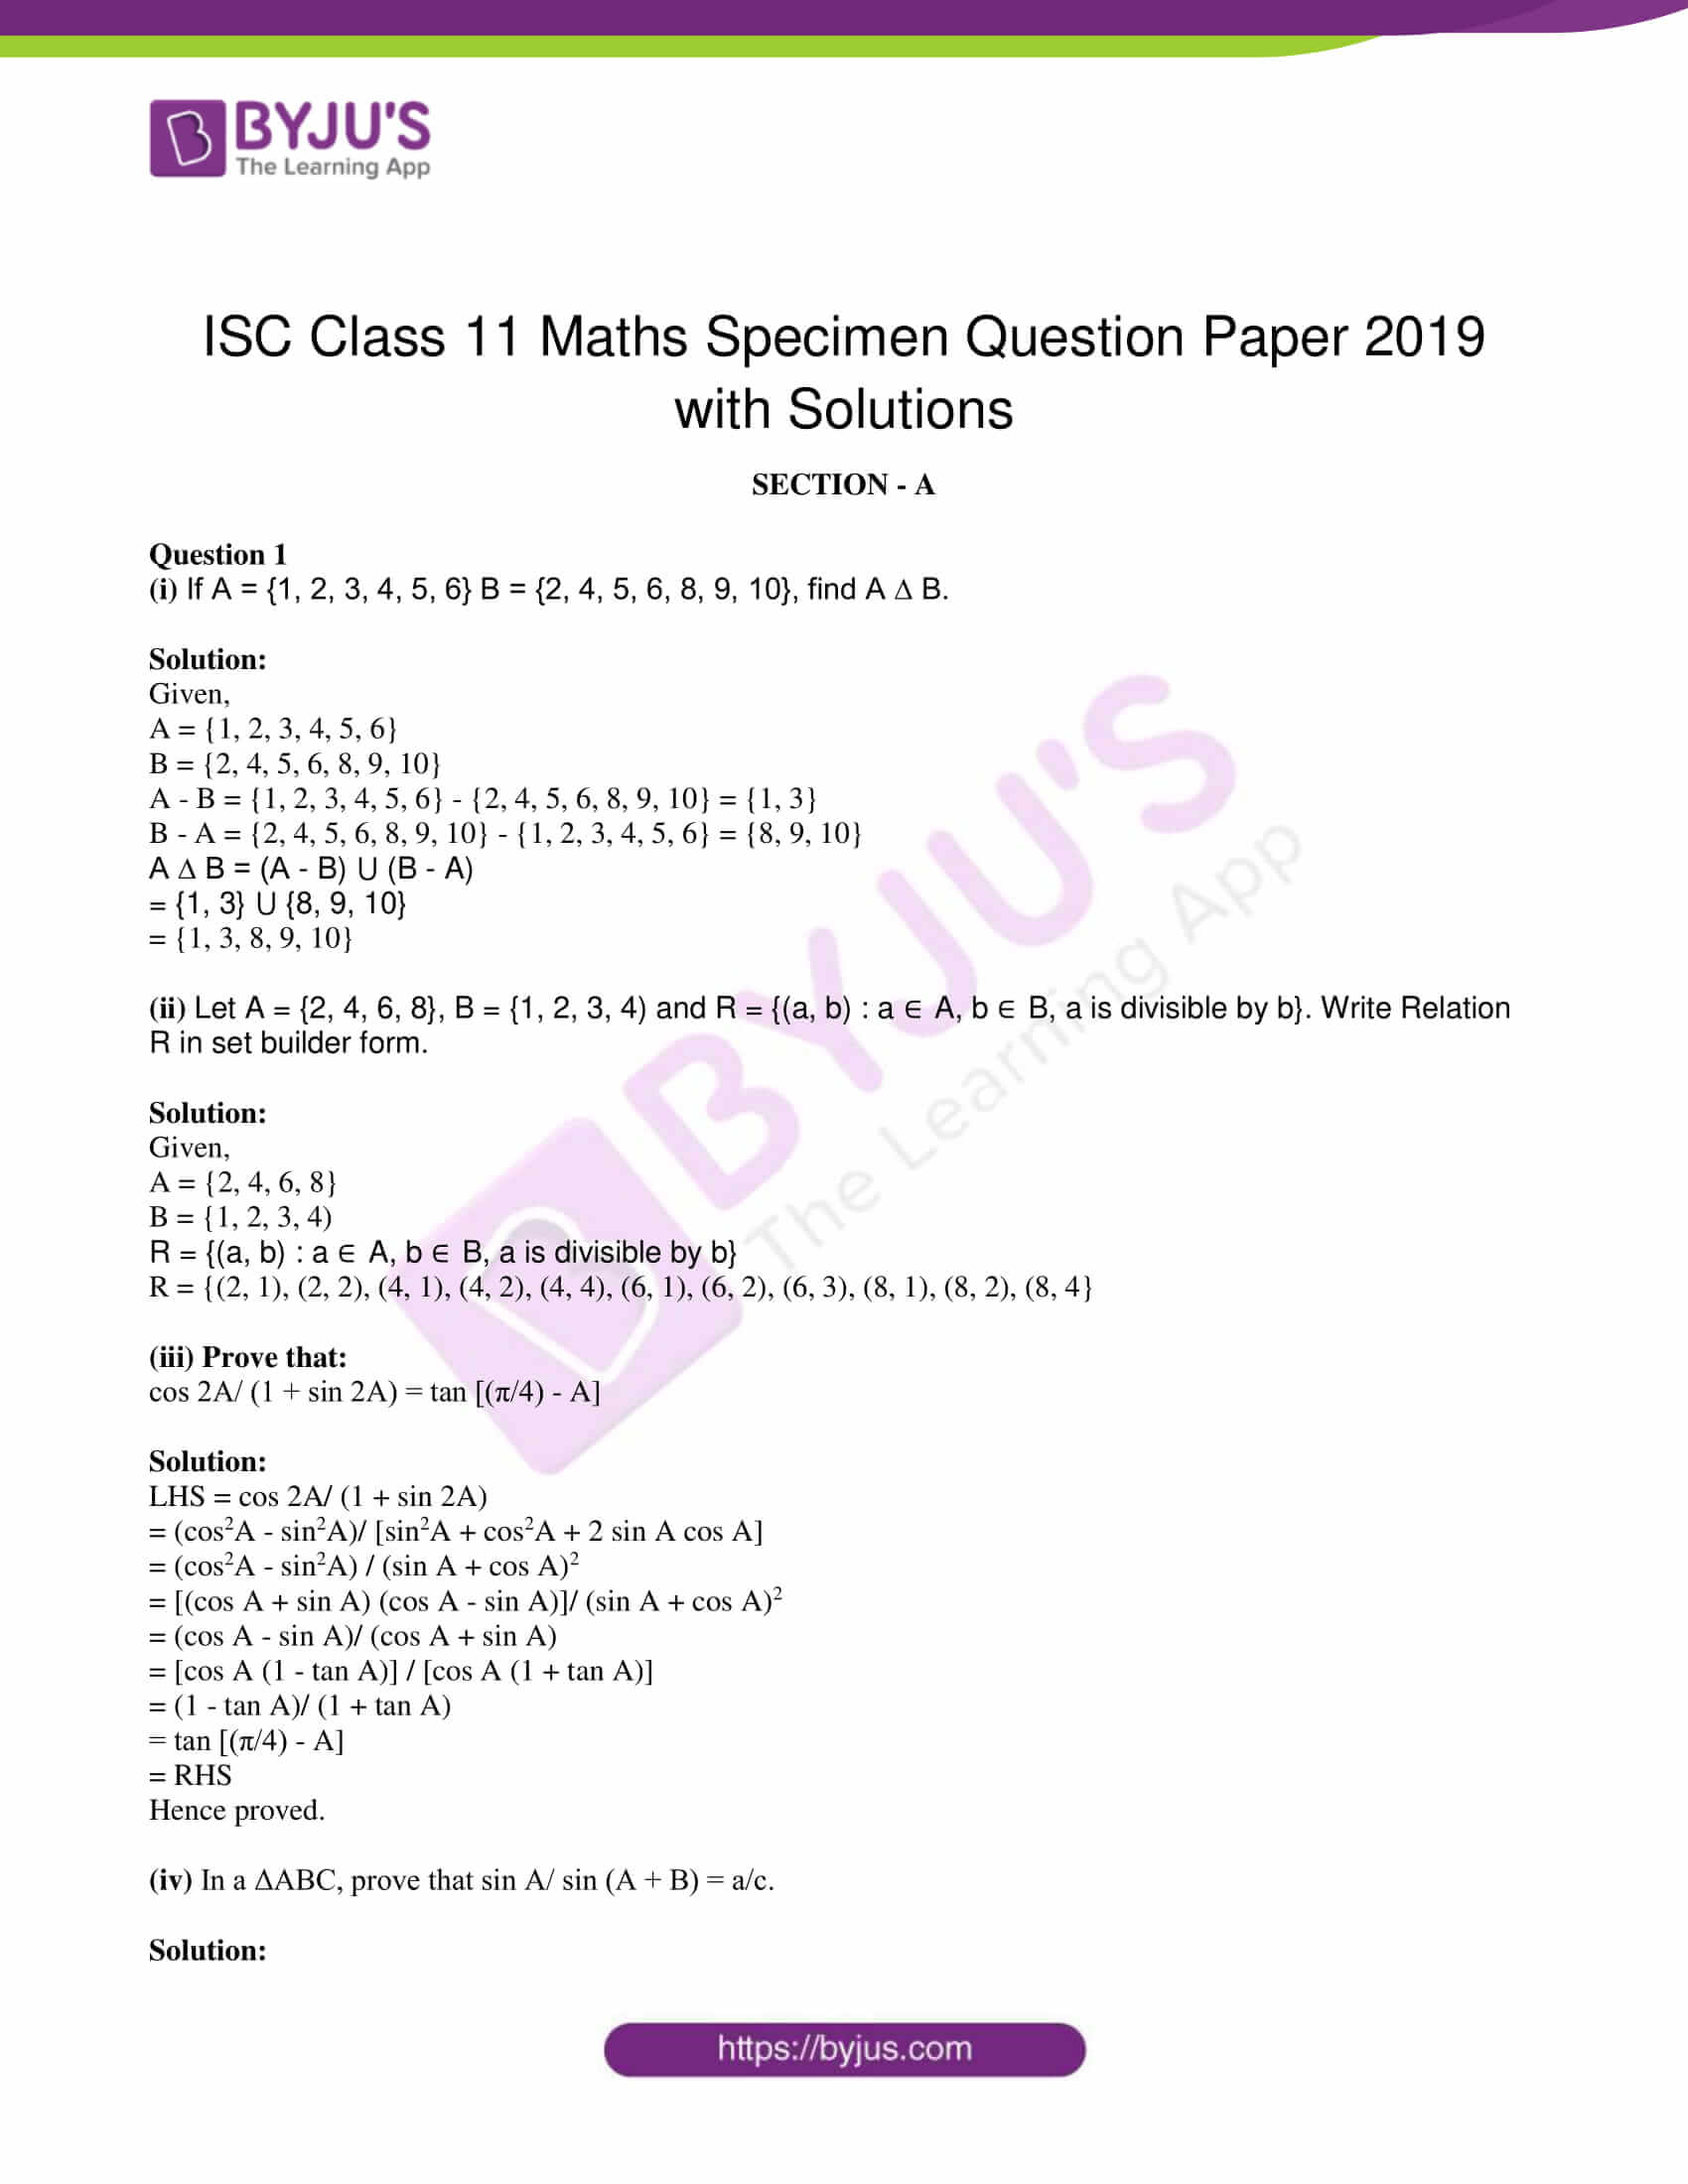 isc class 11 maths specimen question paper with solutions 2019 01